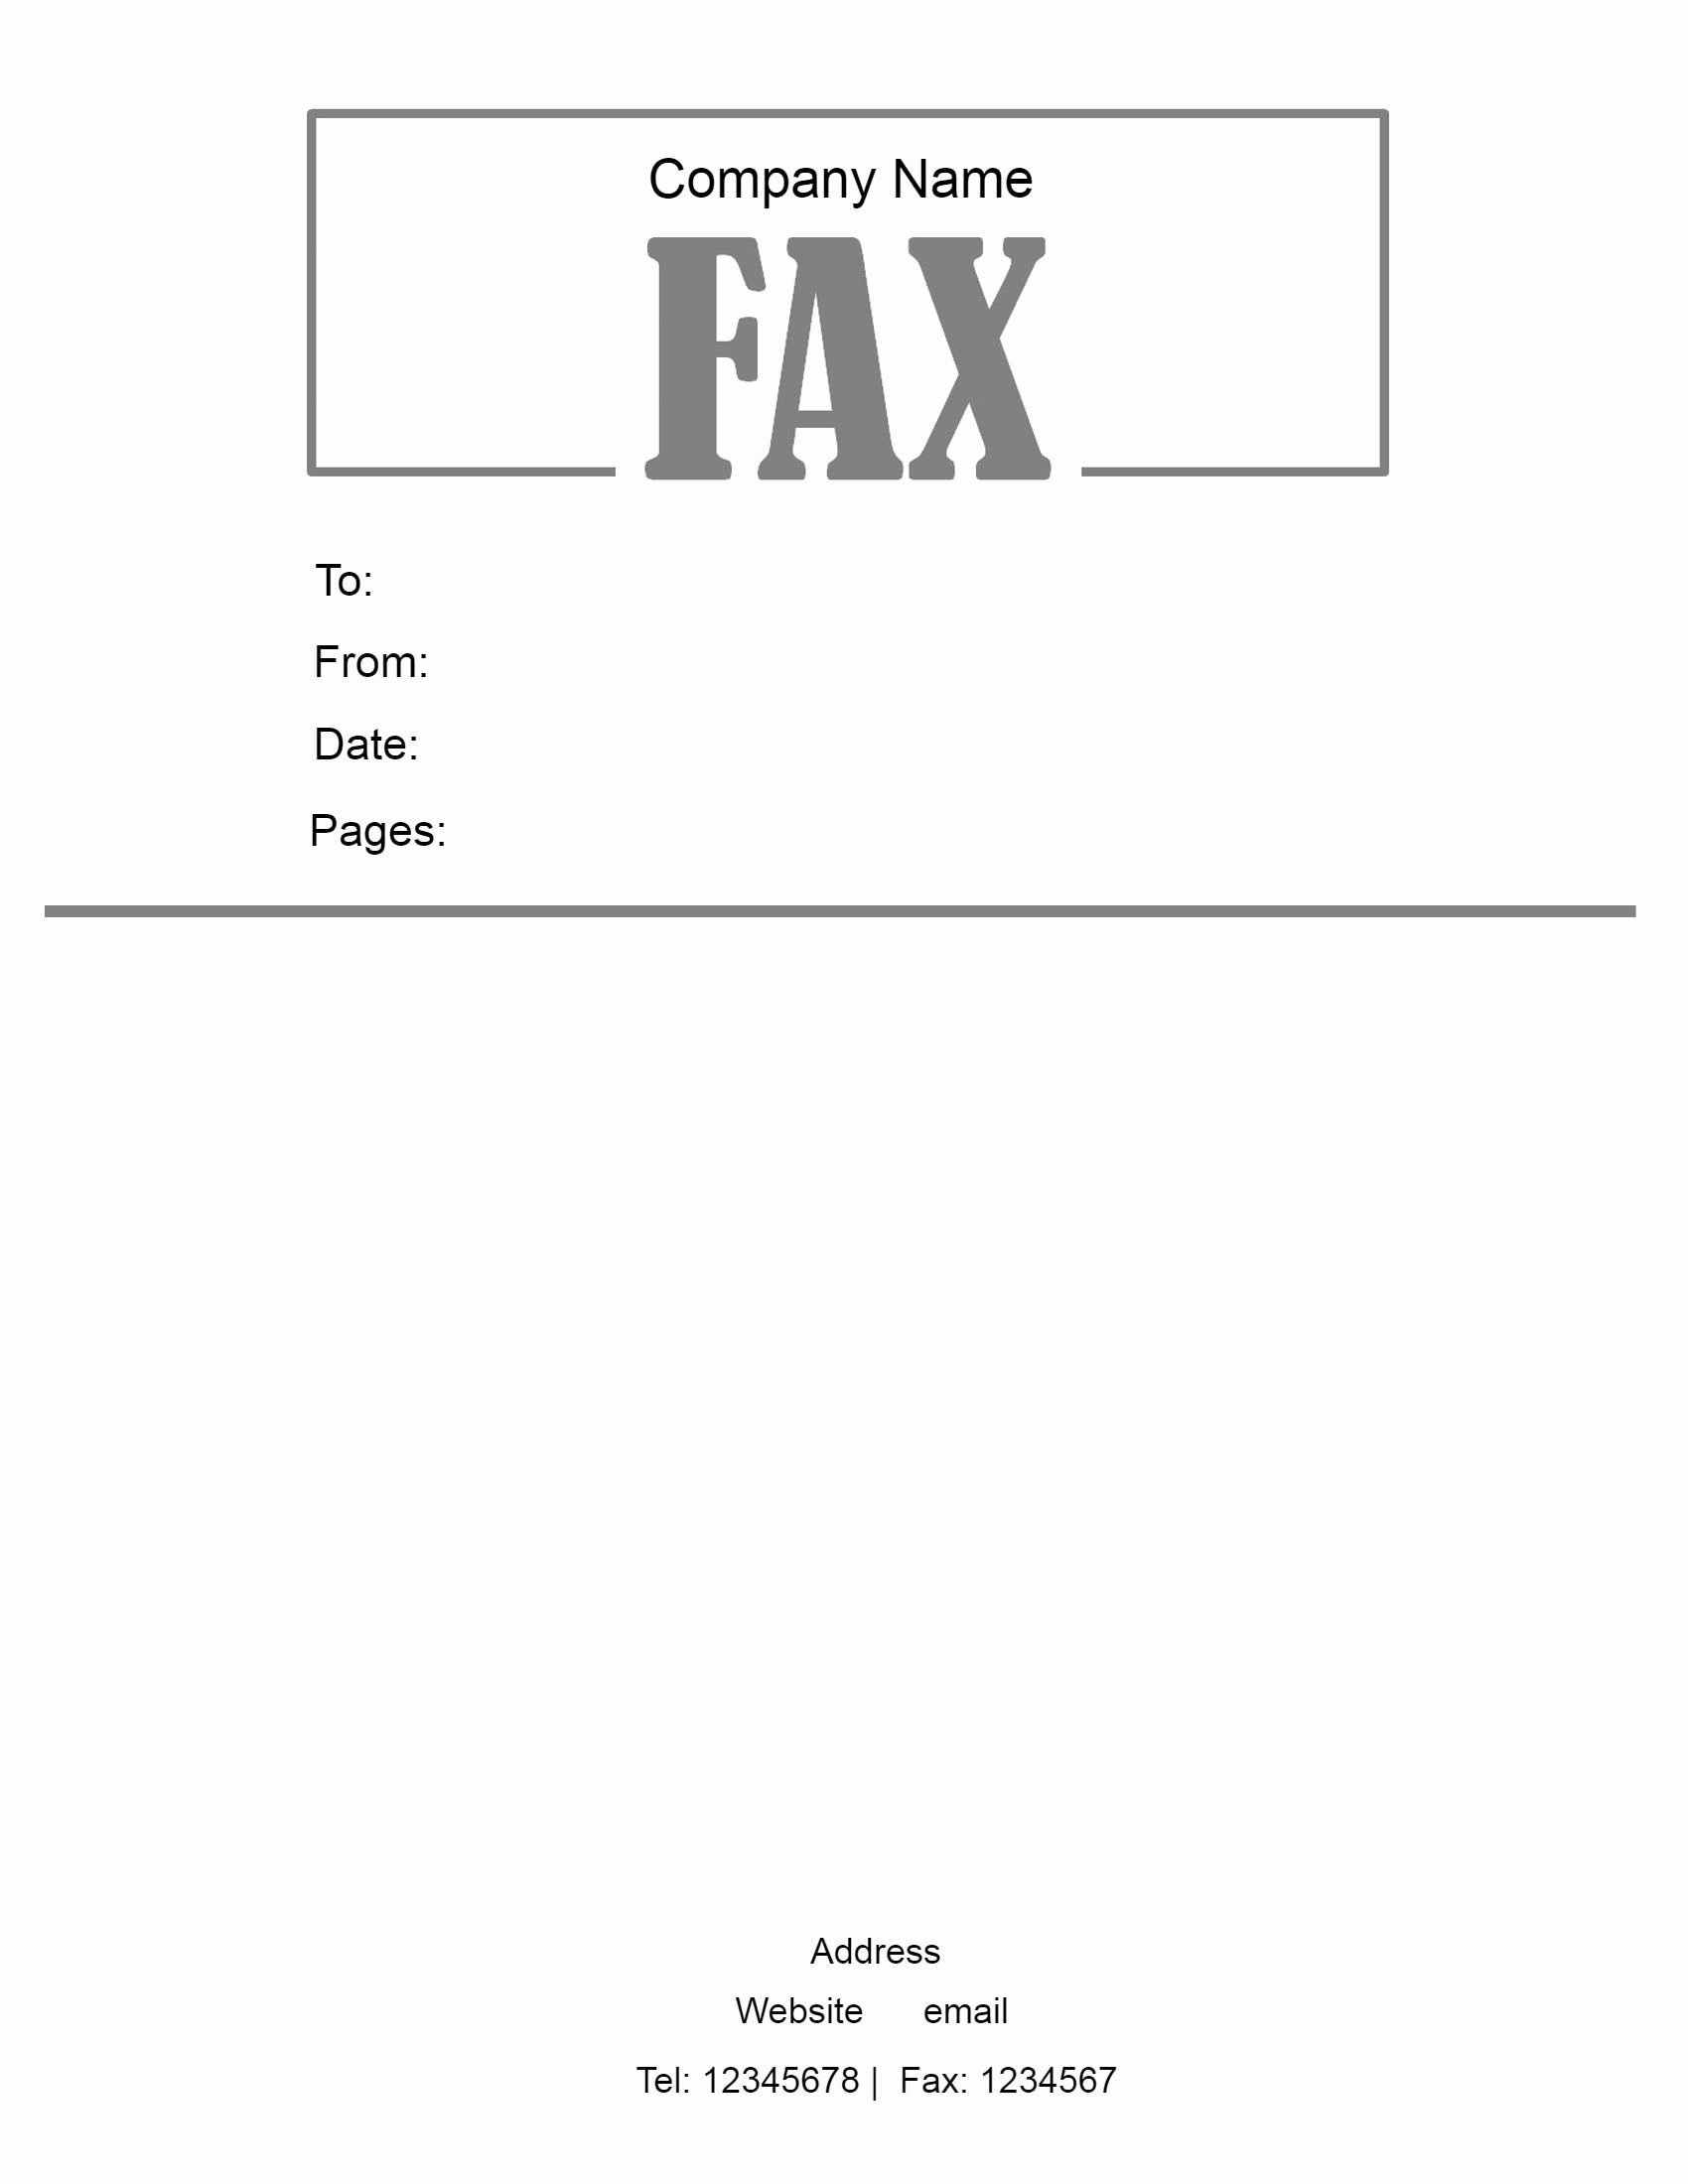 Fax Cover Sheet Template New Free Fax Cover Letter Template